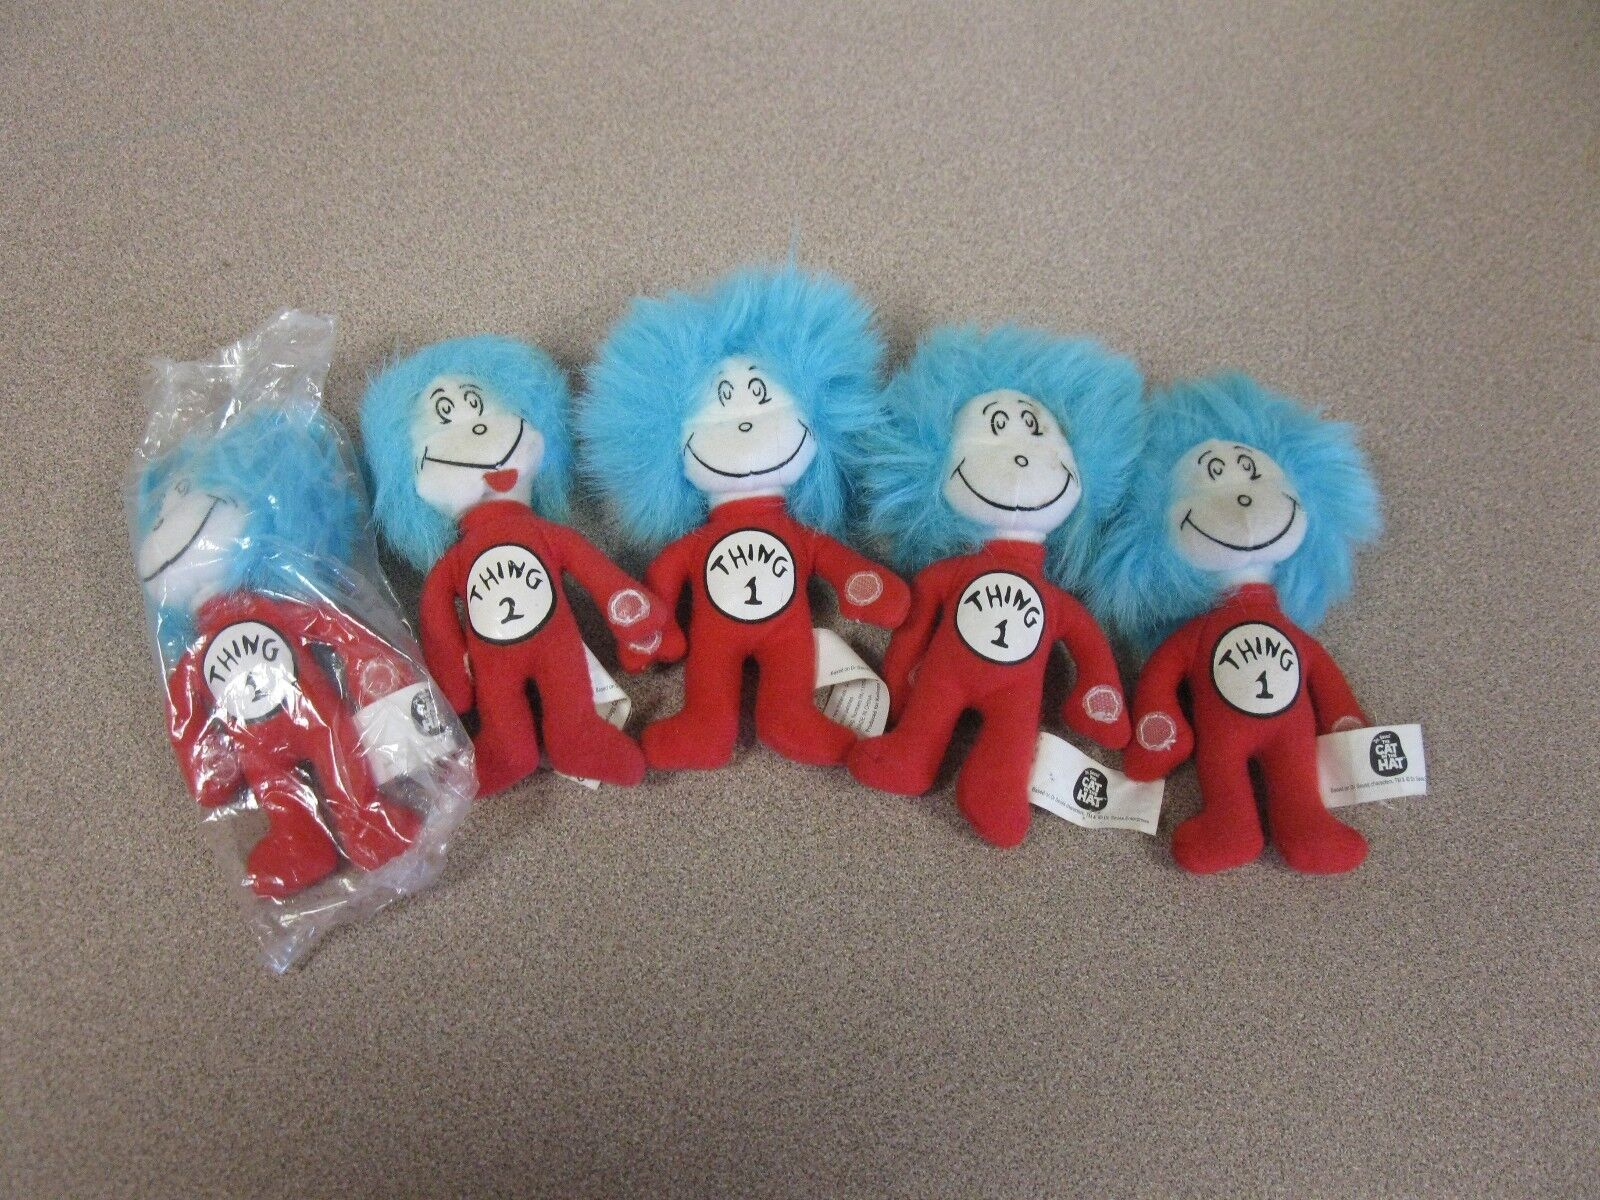 5 Dr. Seuss Cat in the Hat Movie Thing 1 plush Stuffed Animal Toy Doll 5